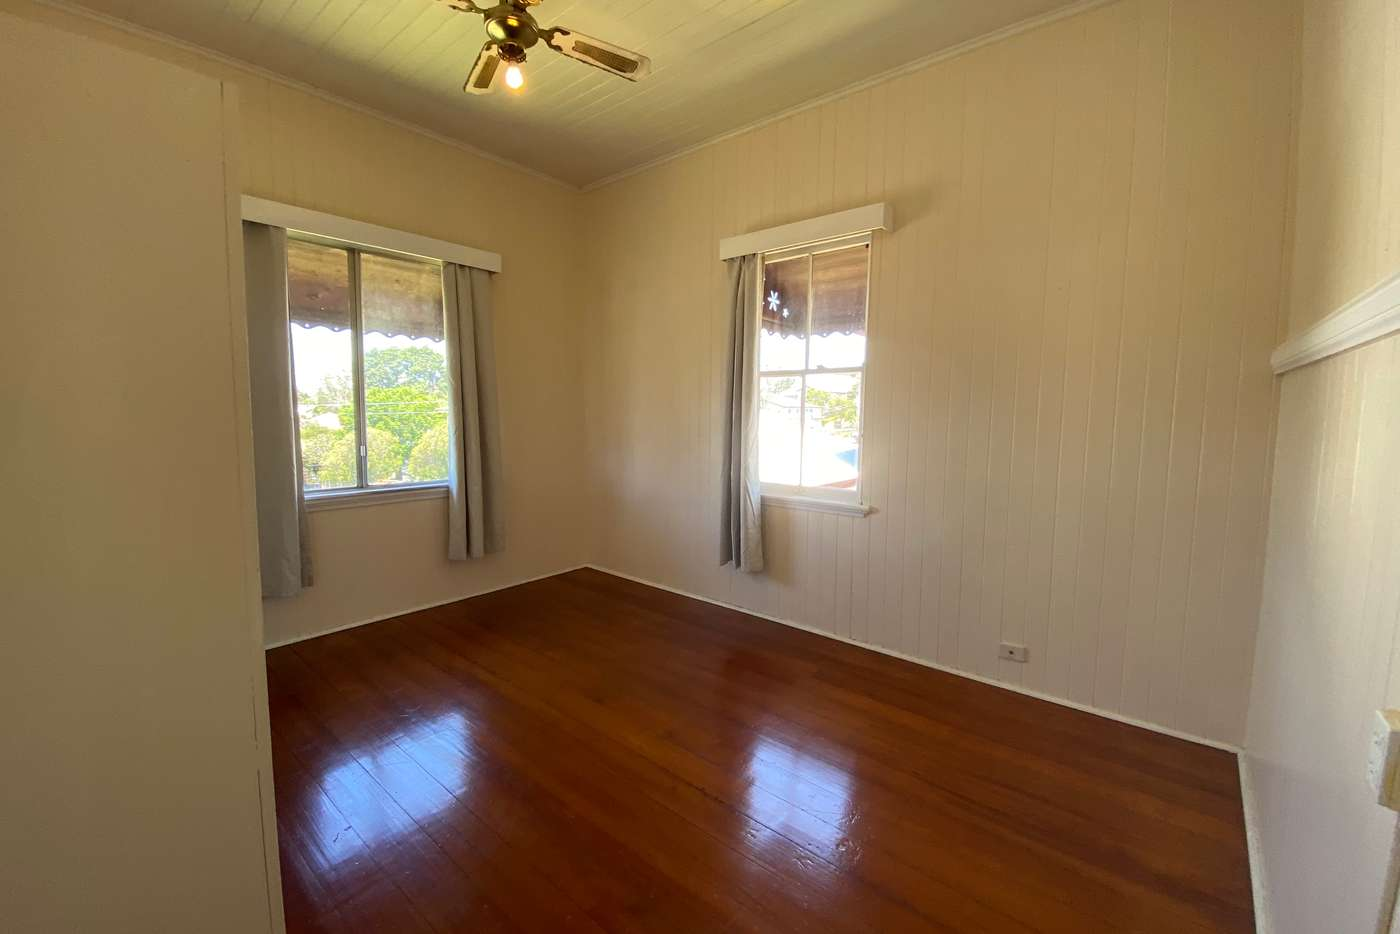 Seventh view of Homely house listing, 14 Lackey Avenue, Coorparoo QLD 4151